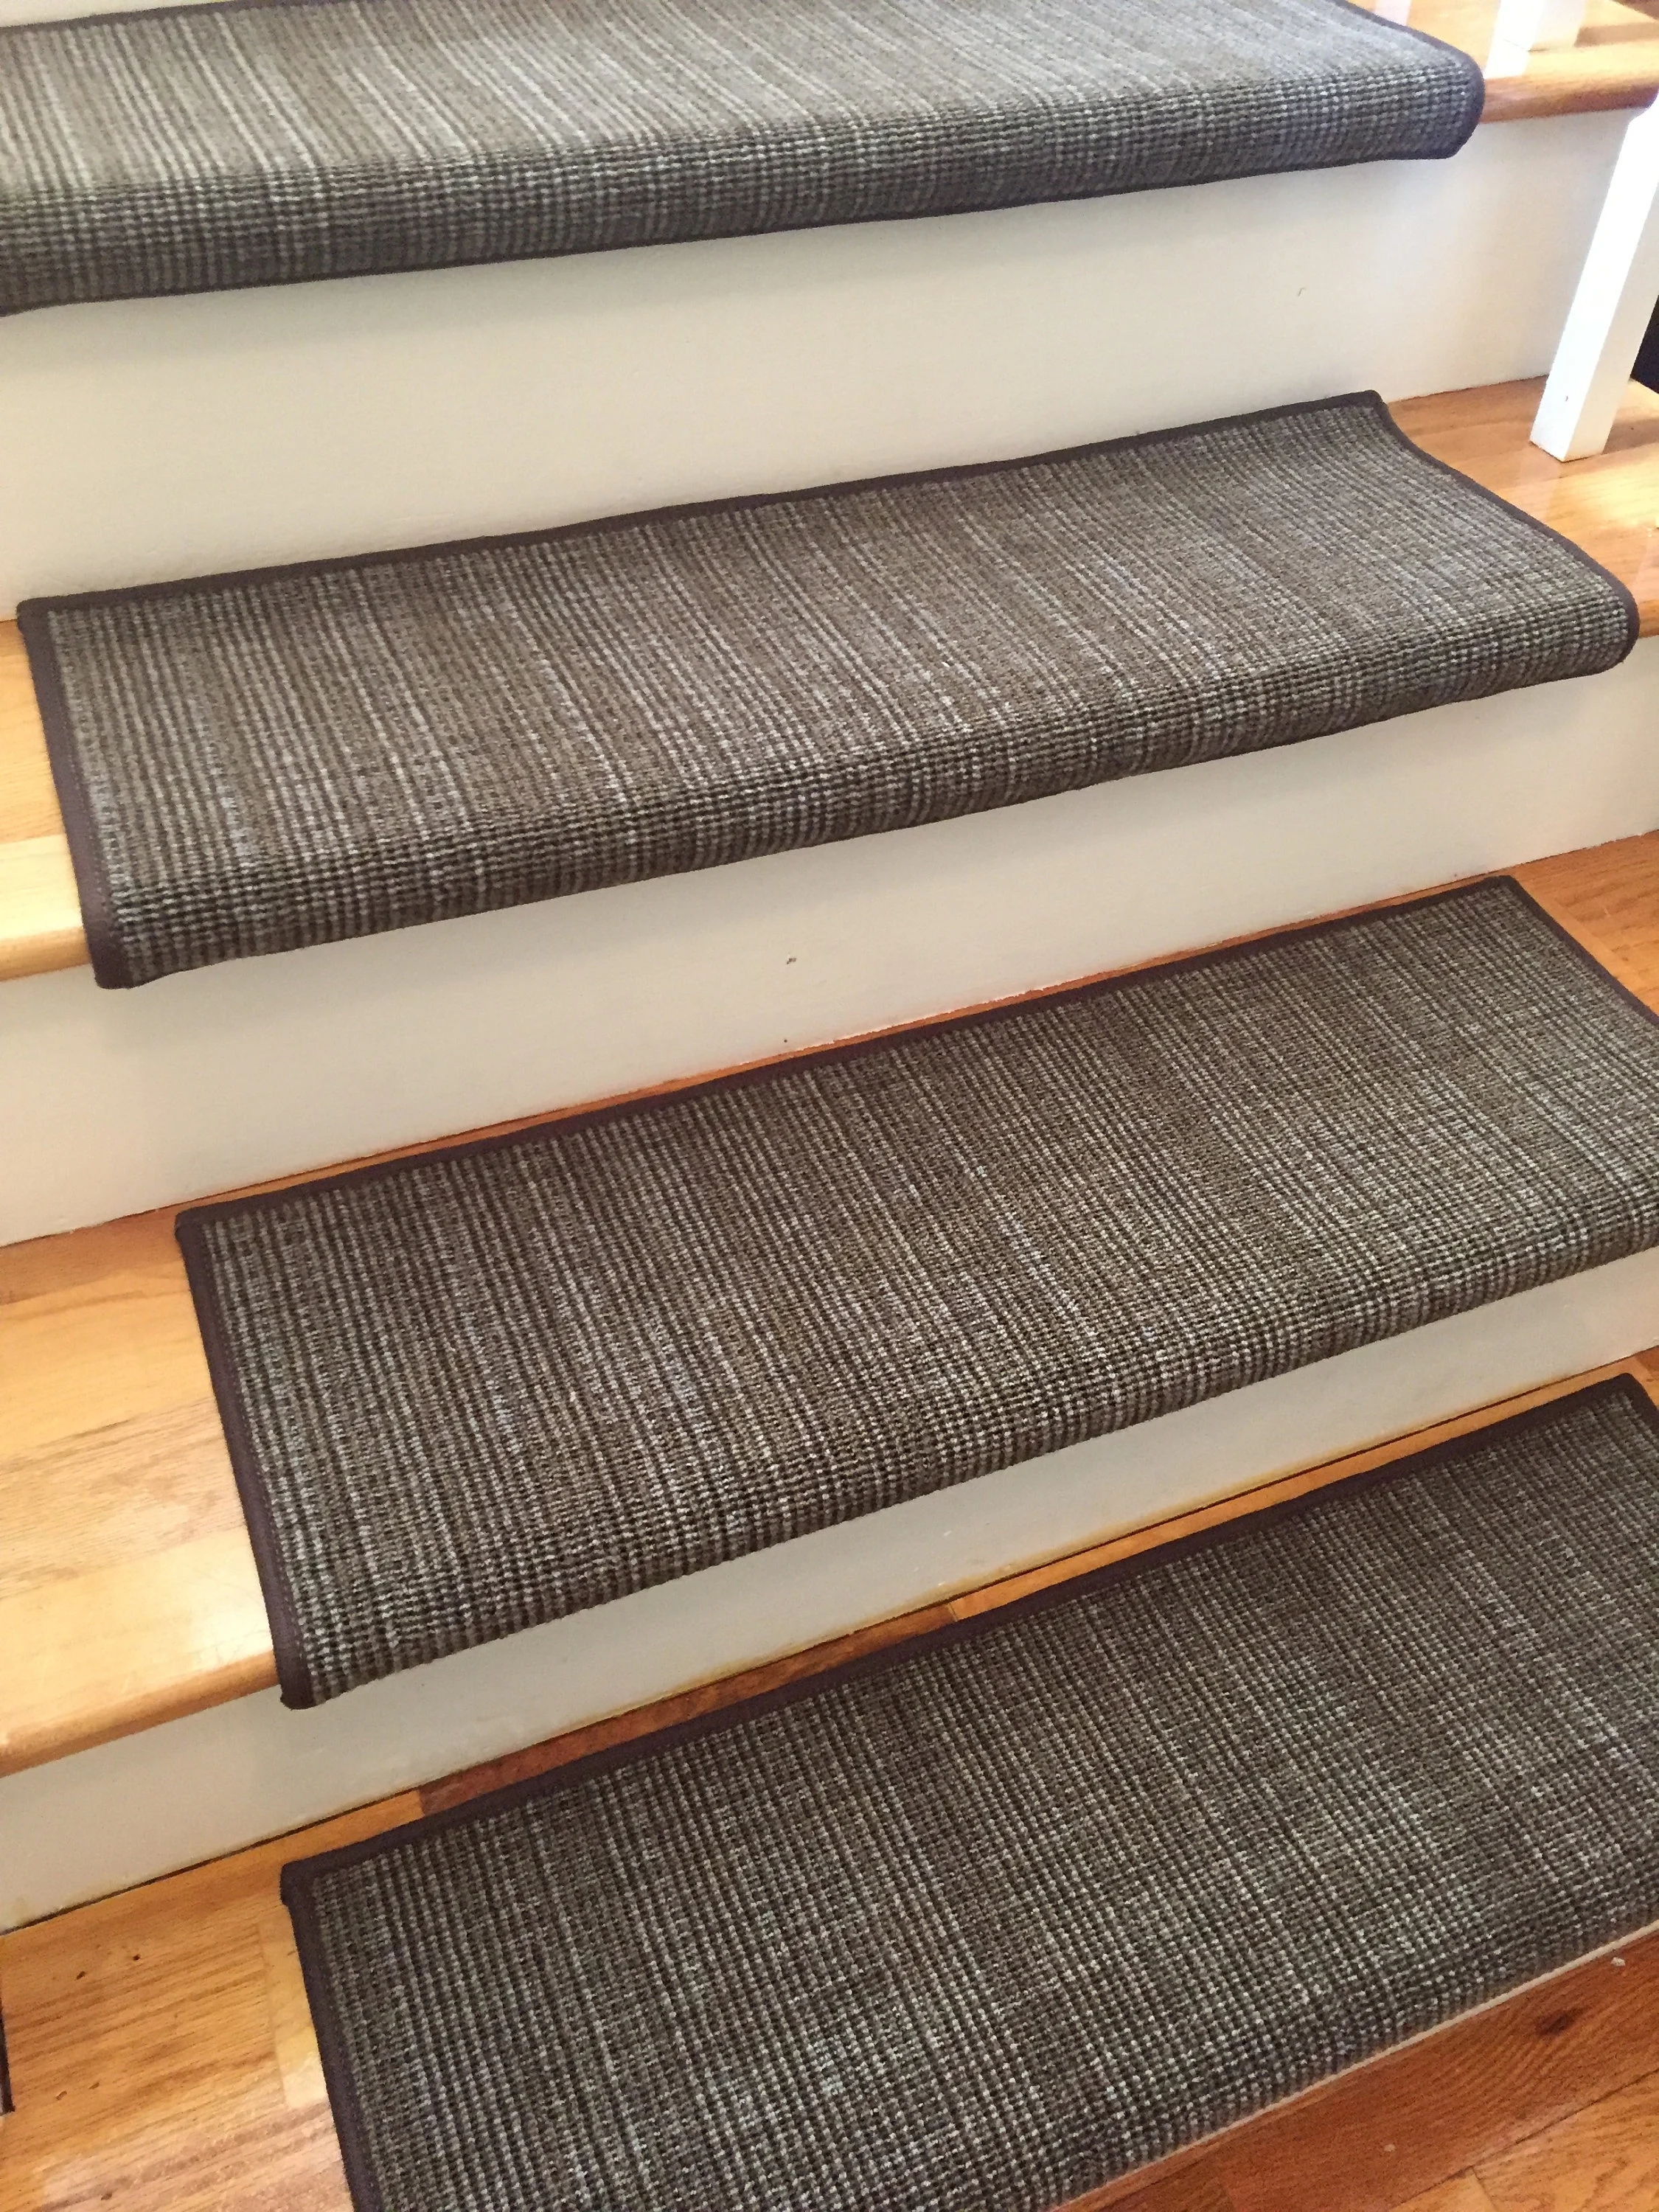 Traverse Earth And Other Colors True Bullnose™ Padded Carpet   True Bullnose Stair Treads   Rug Runner   Stair Runner   Flooring   Basement Stairs   Comfort Safety